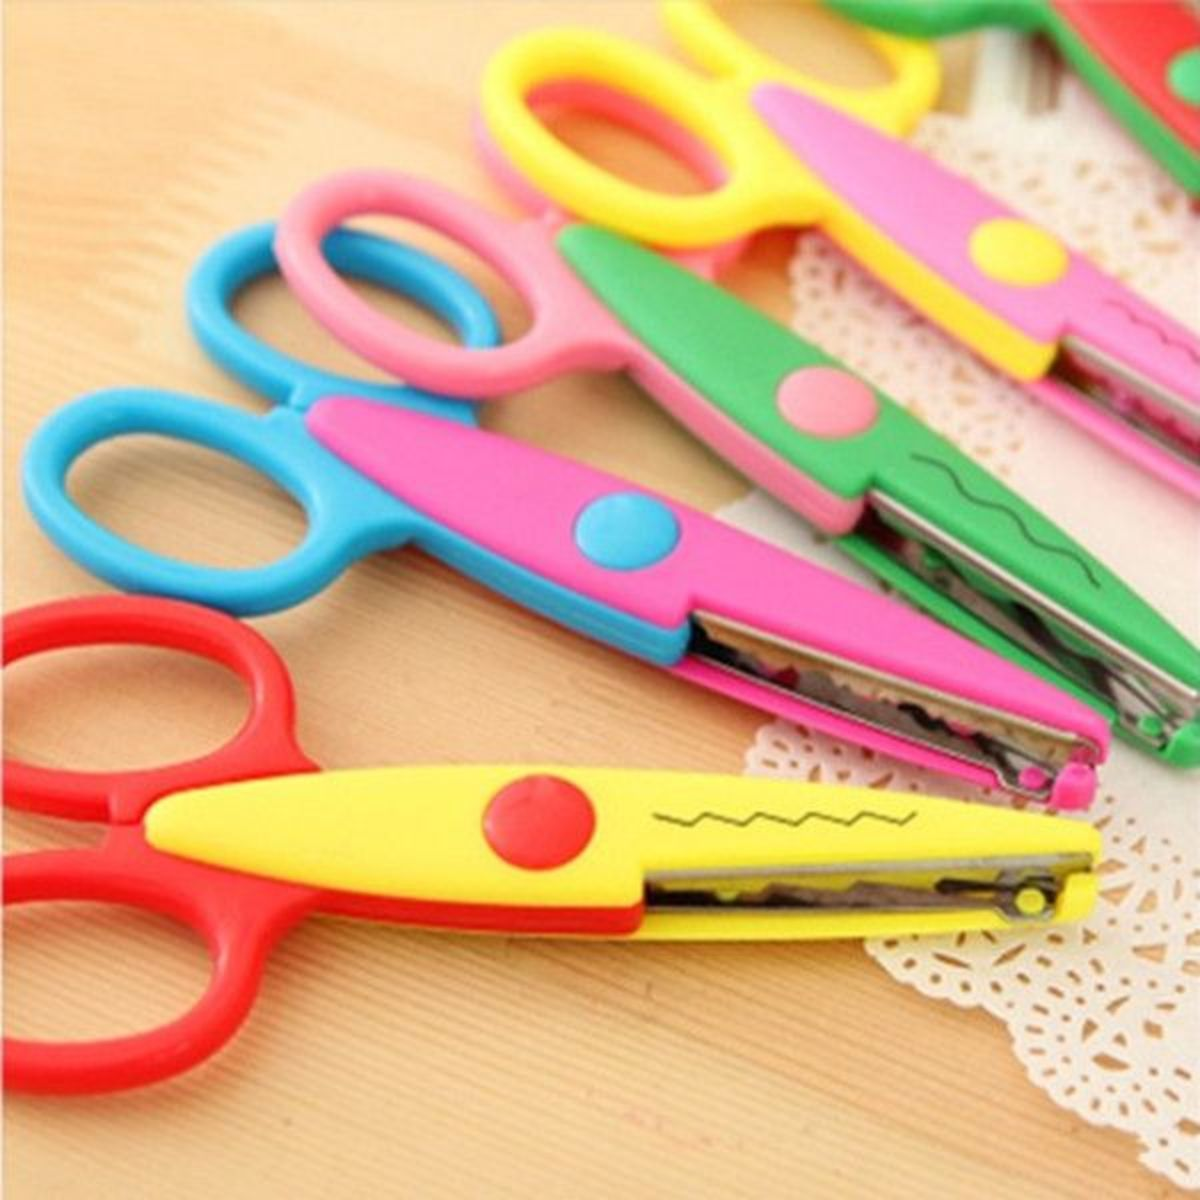 Decorative Scissors Ideas and Tips  FeltMagnet